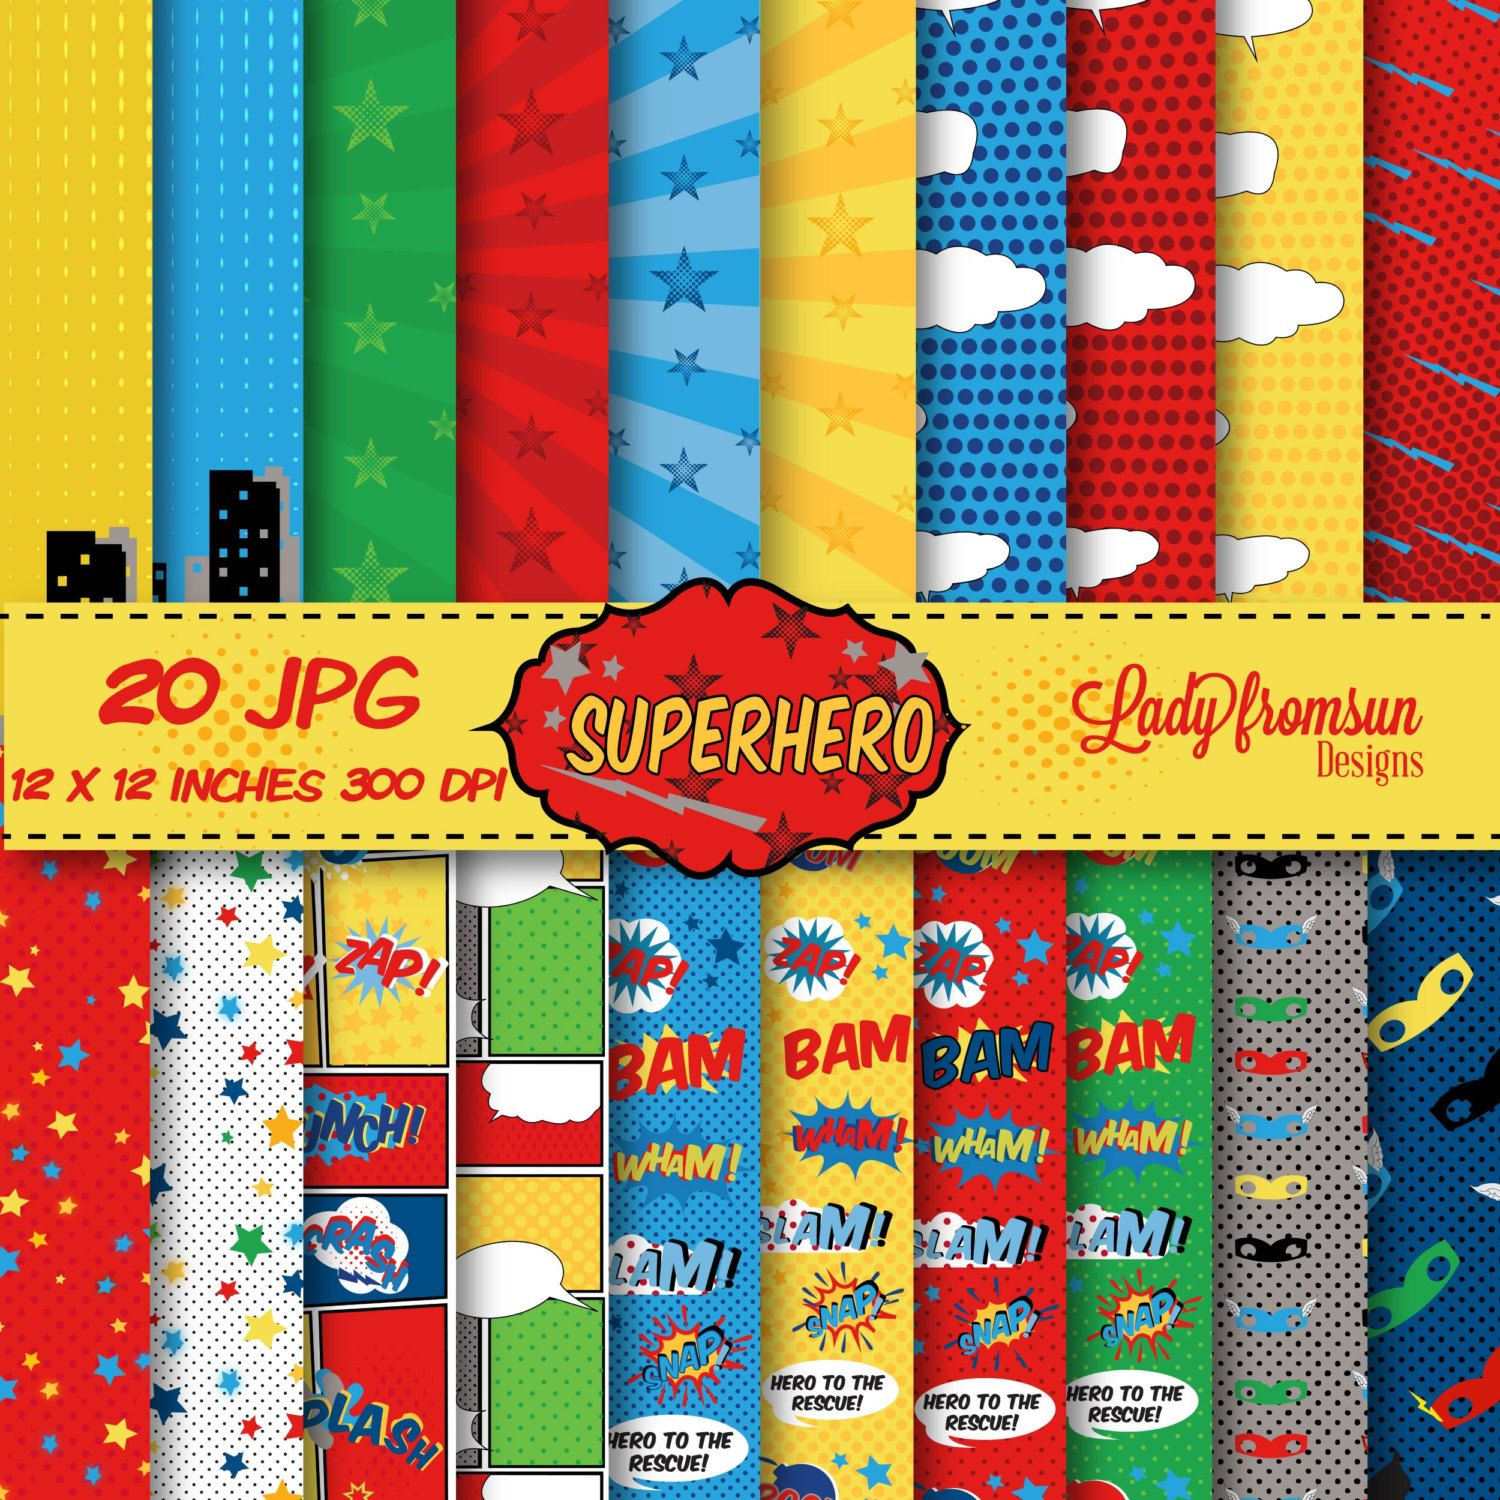 Scrapbook paper books - Superhero Digital Paper Pack Comic Book Pages Action Words Comic Sound Effects Scrapbook Paper And Backgrounds Commercial Personal Use